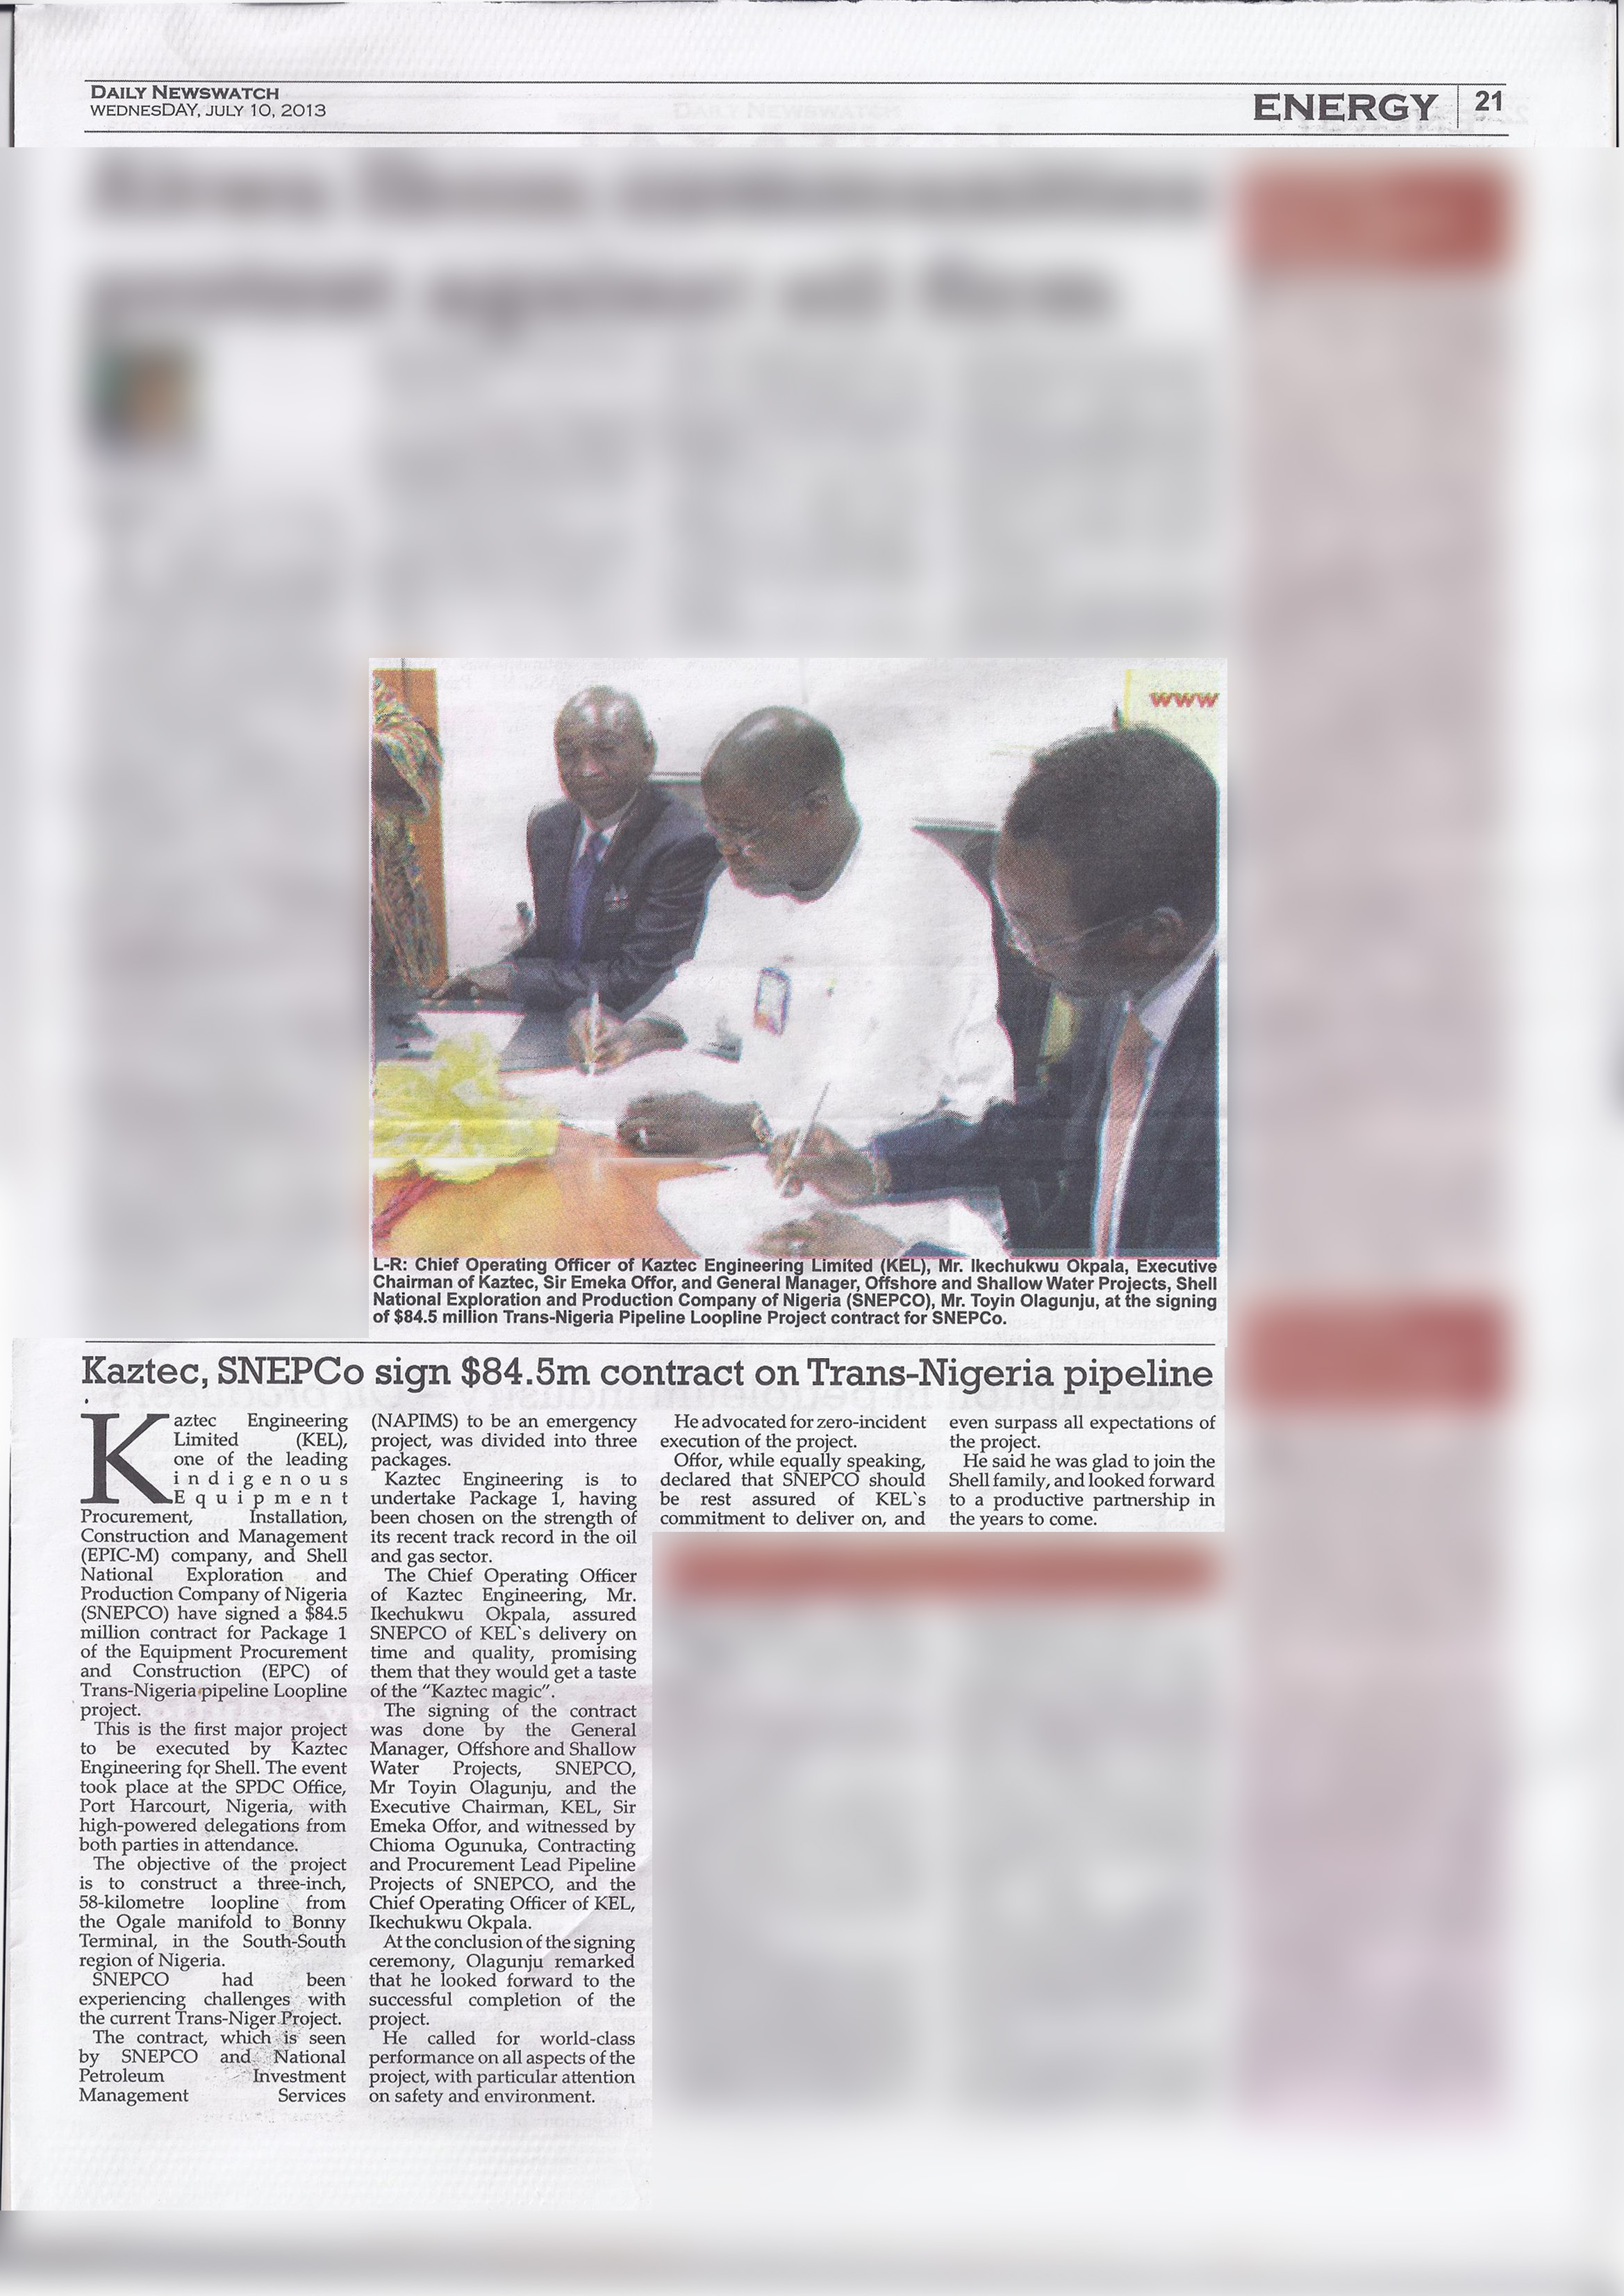 Kaztec, SNEPCO sign $84.5m contract on Trans-Nigeria pipeline